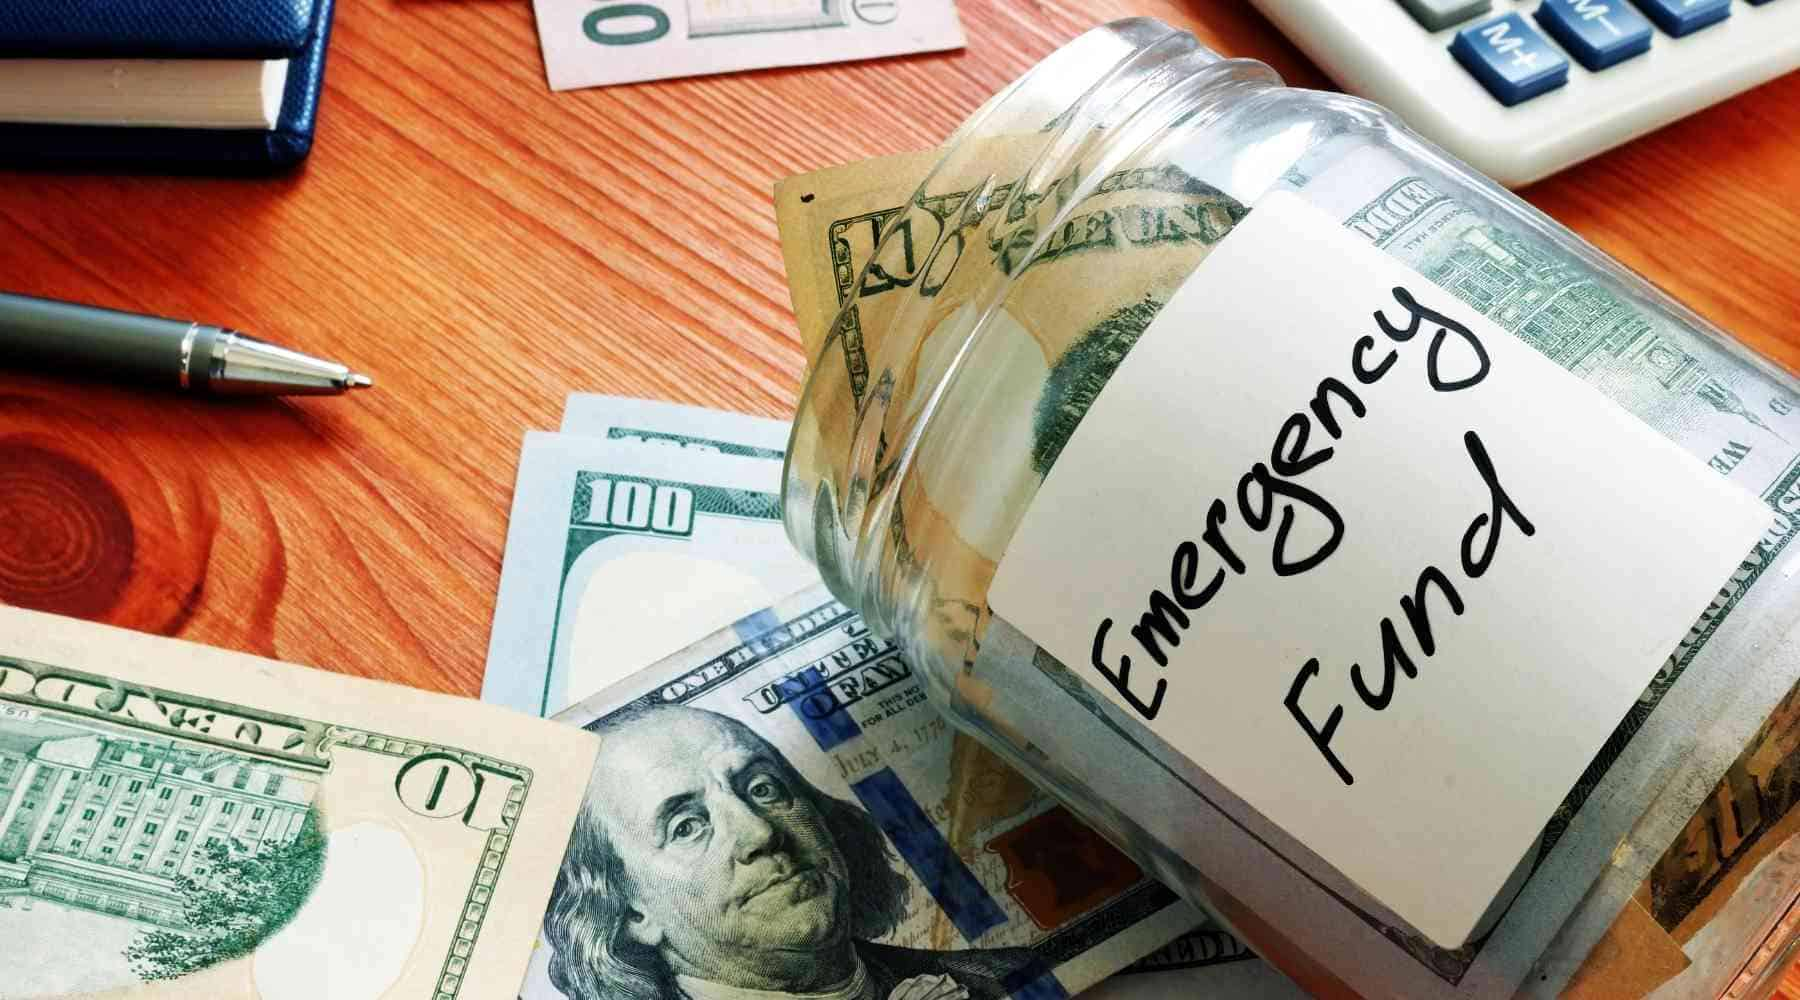 How to Become Fiscally Responsible - Emergency Fund